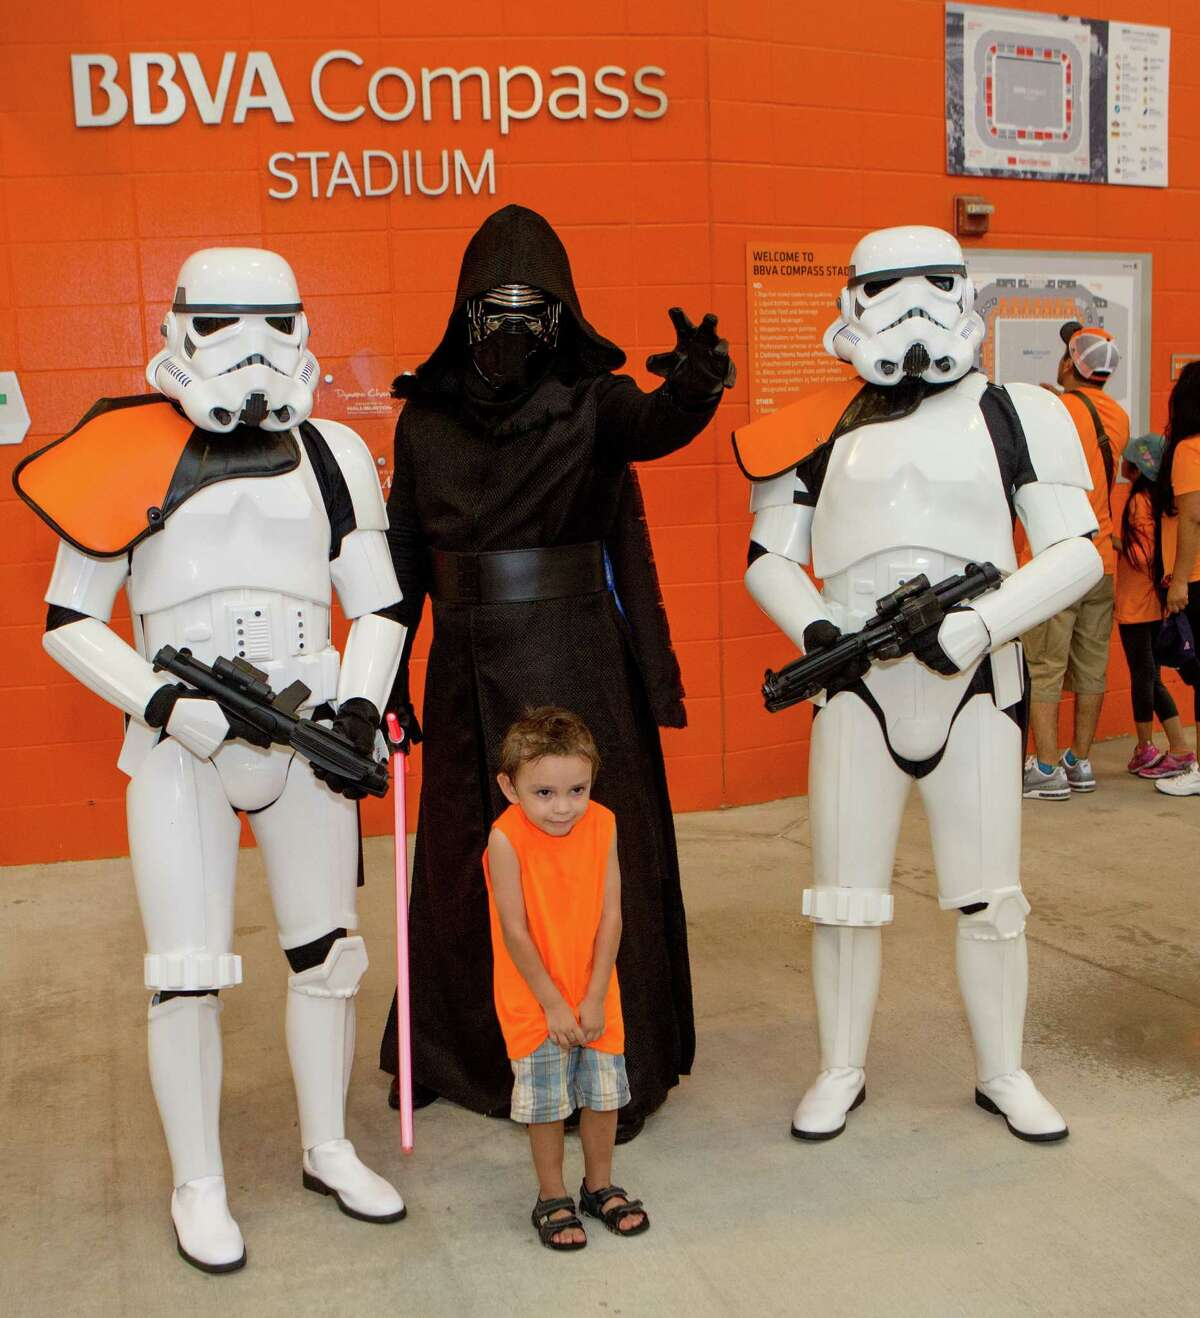 A young Start Wars fan posing with Star Wars characters before the first half of action between the Houston Dynamo and the D.C. United during a soccer game at BBVA Compass, Saturday, June 18, 2016, in Houston. ( Juan DeLeon / for the Houston Chronicle )